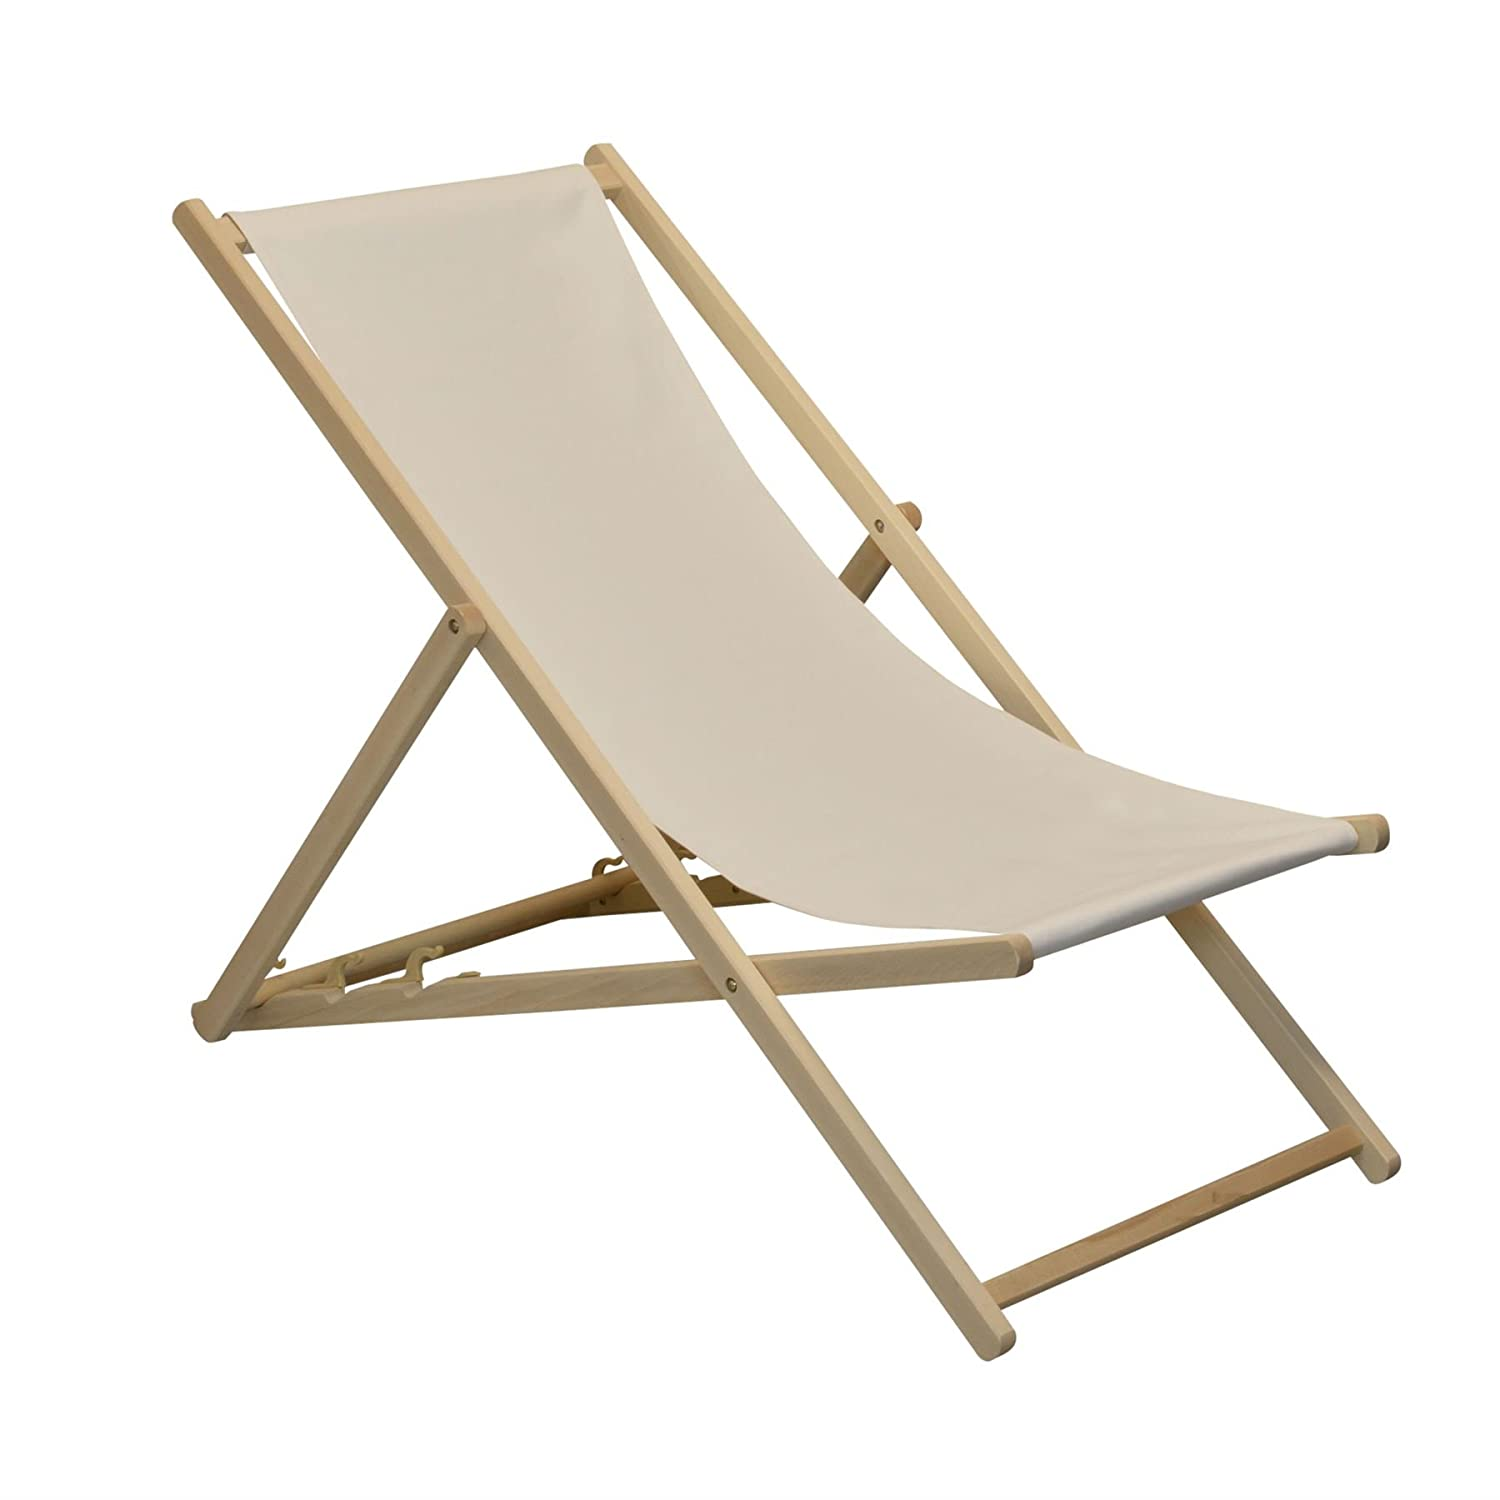 Traditional Adjustable Garden / Beach-style Deck Chair - Cream Harbour Housewares